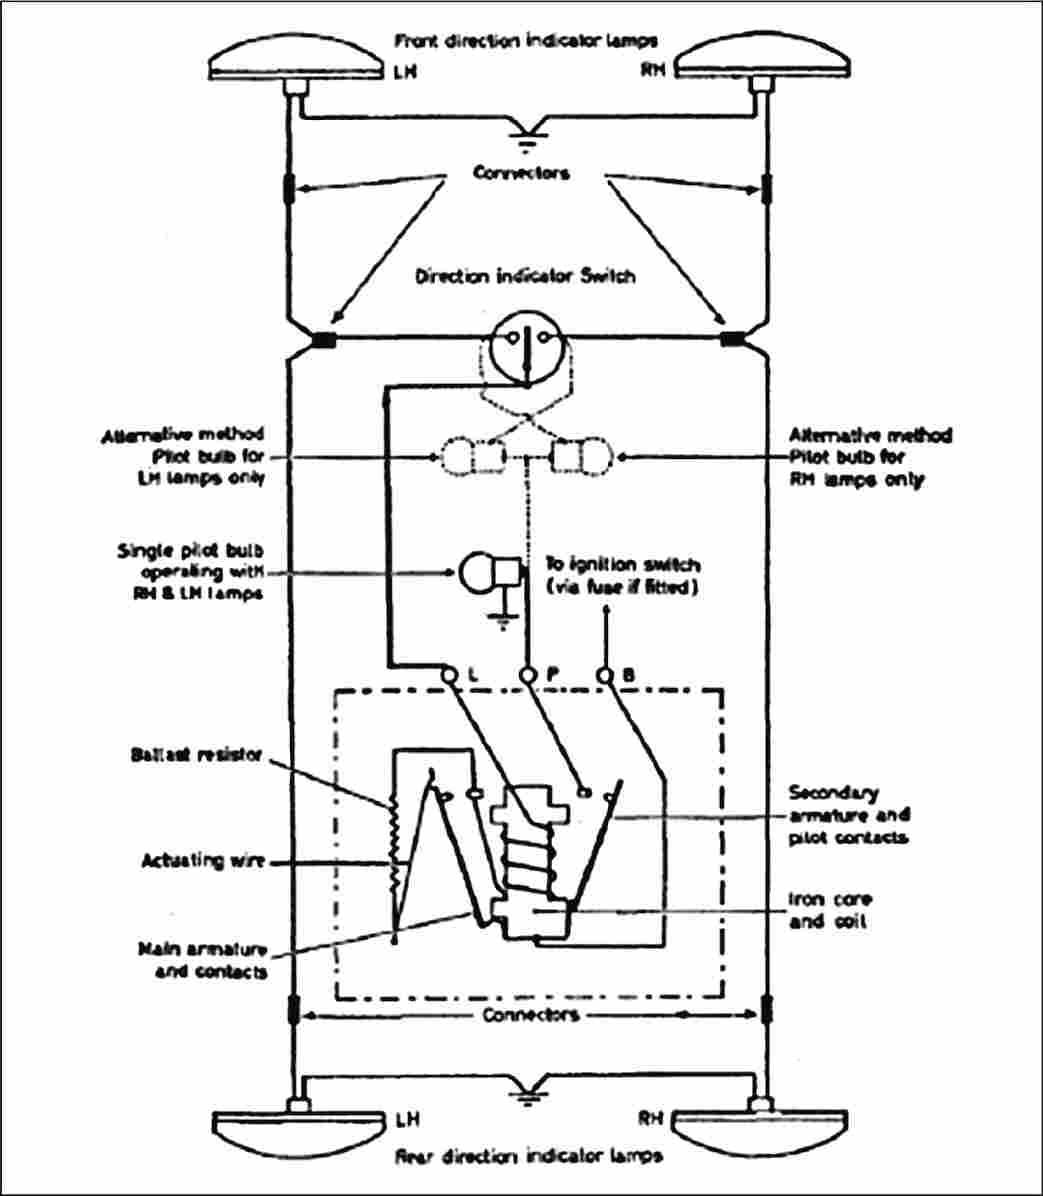 standard_flasher_diagram modern flasher circuits flasher unit wiring diagram at edmiracle.co